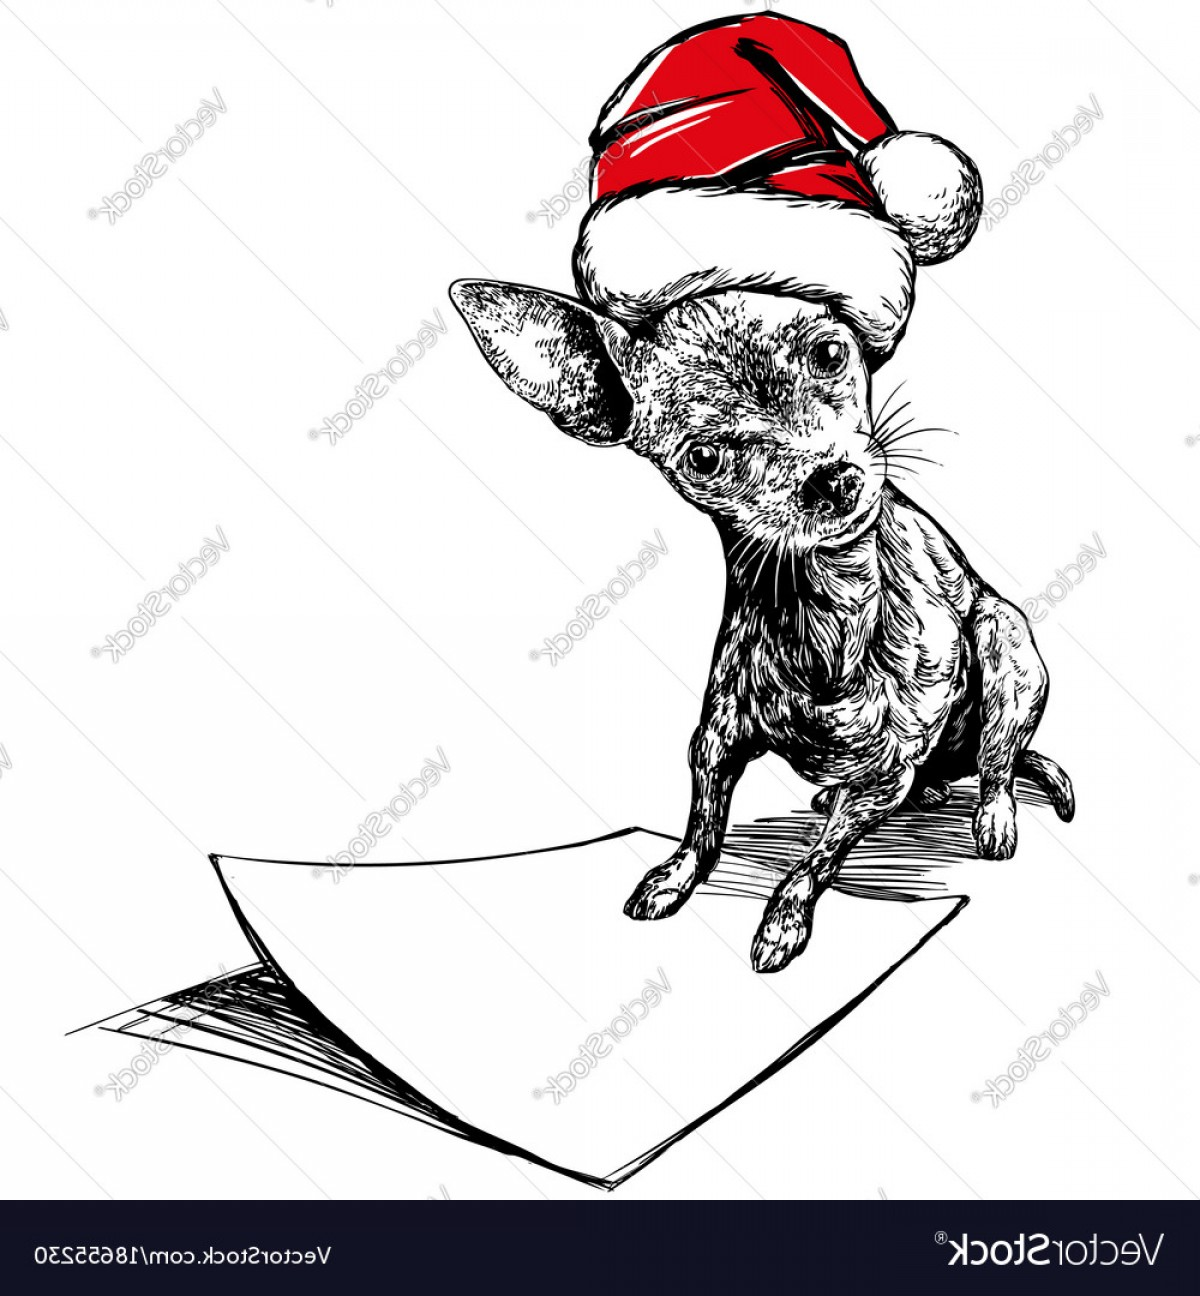 Stocking Hat Vector: Comfortable Dog In Santa Stocking Hat Santa Claus Christmas Vector